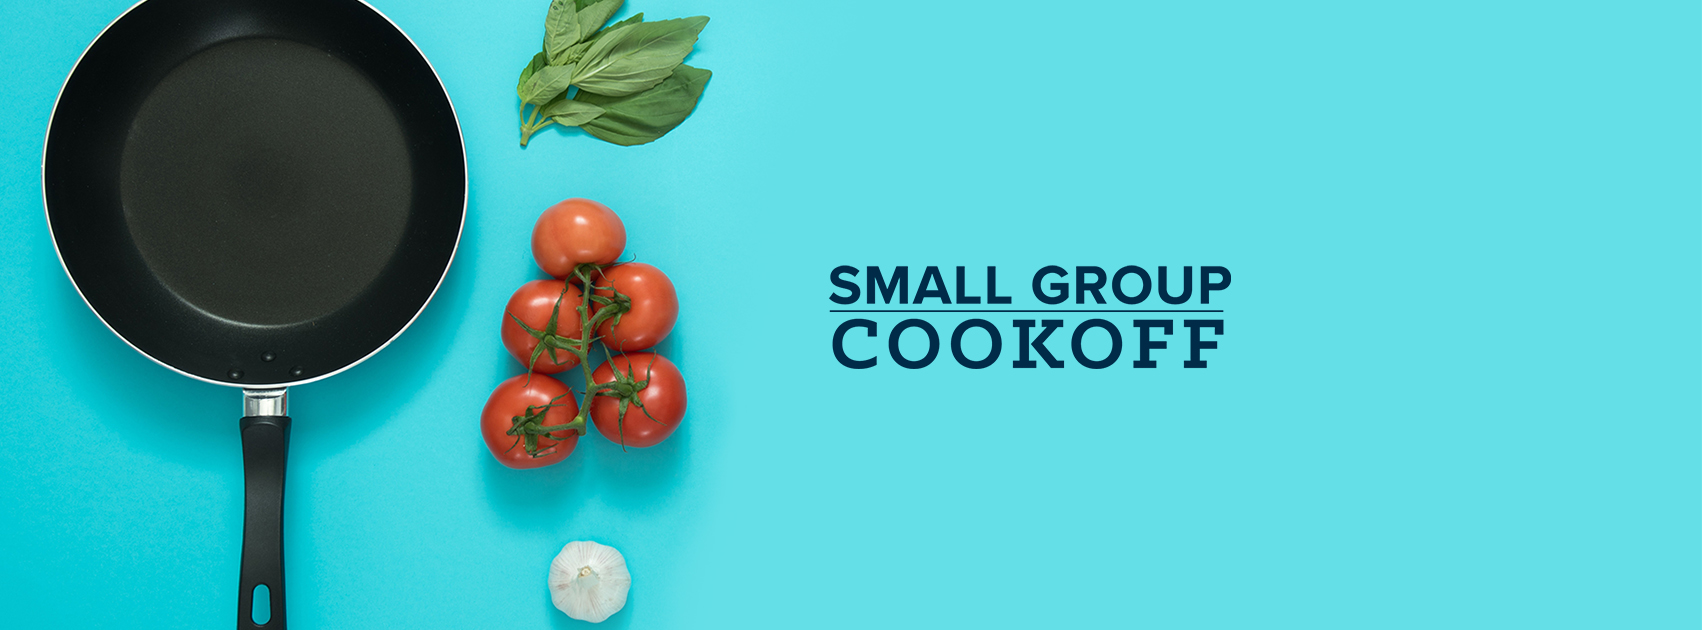 Small Group Cookoff FB Cover Photo.jpg